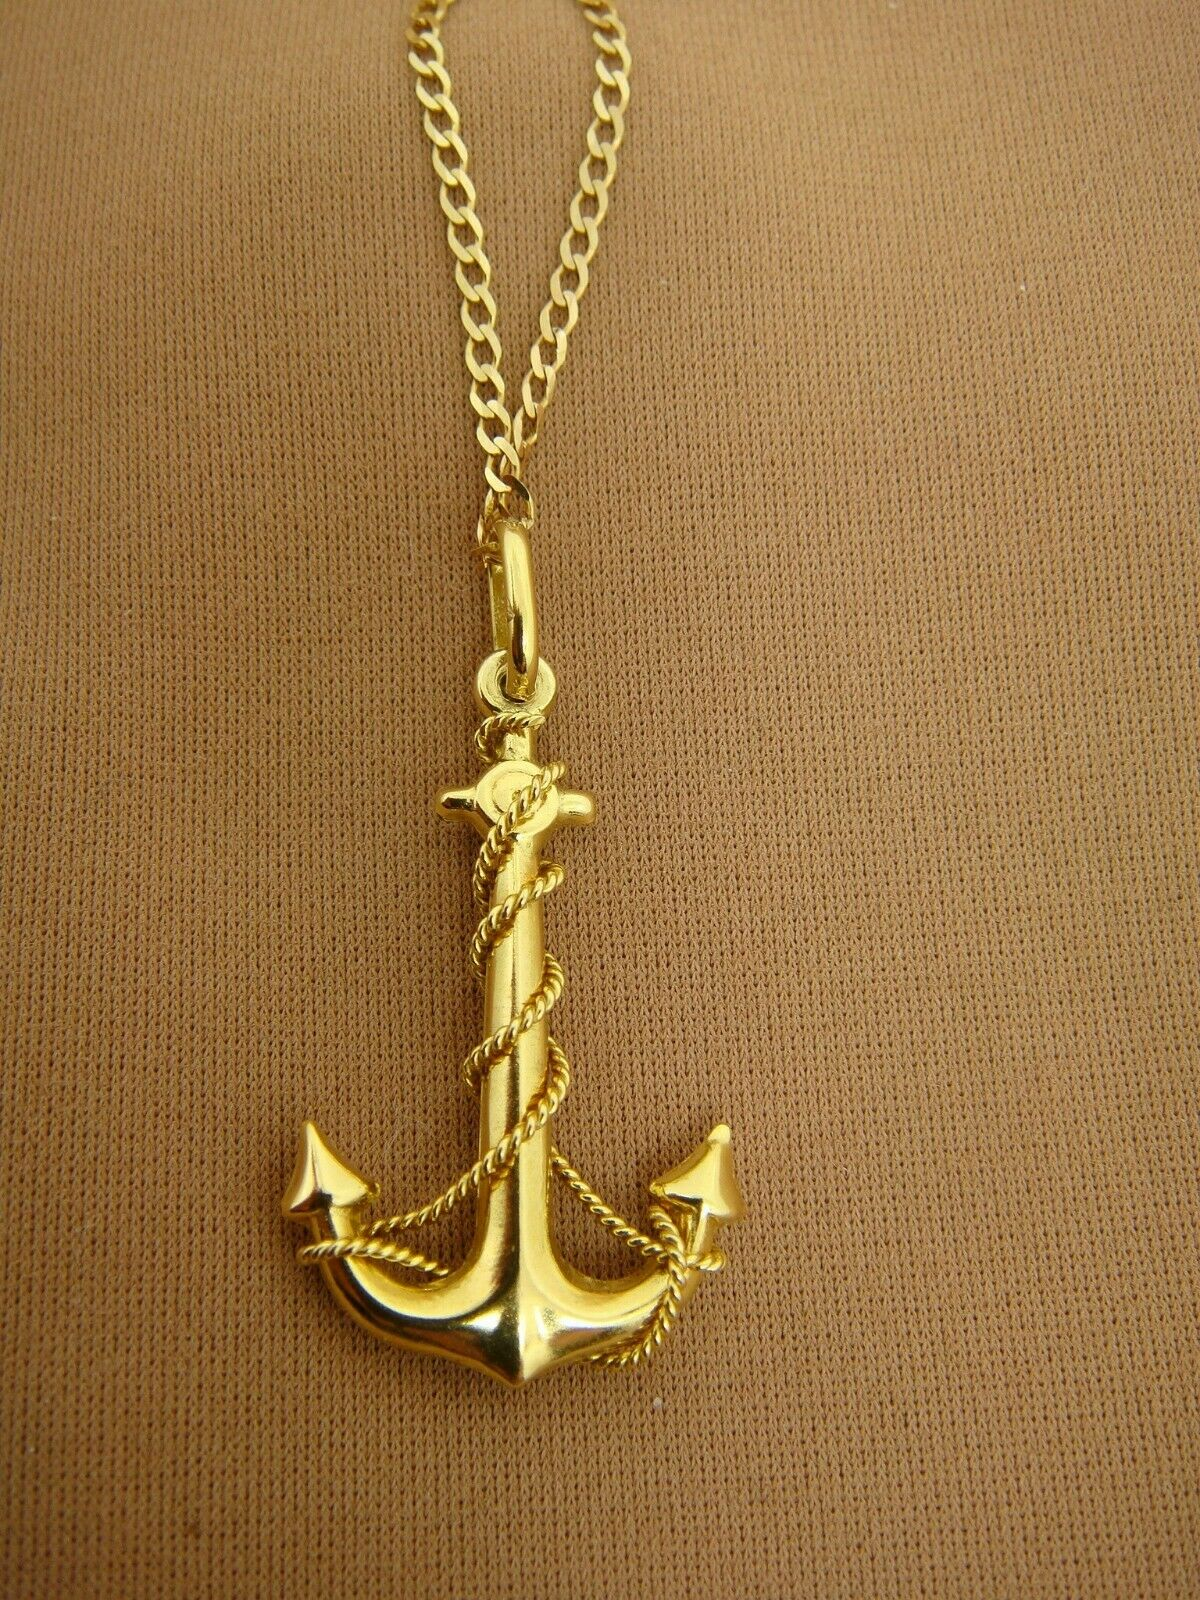 9K Solid Yellow gold Womens Rope & ANCHOR Pendant on 18  Chain Boating Nautical